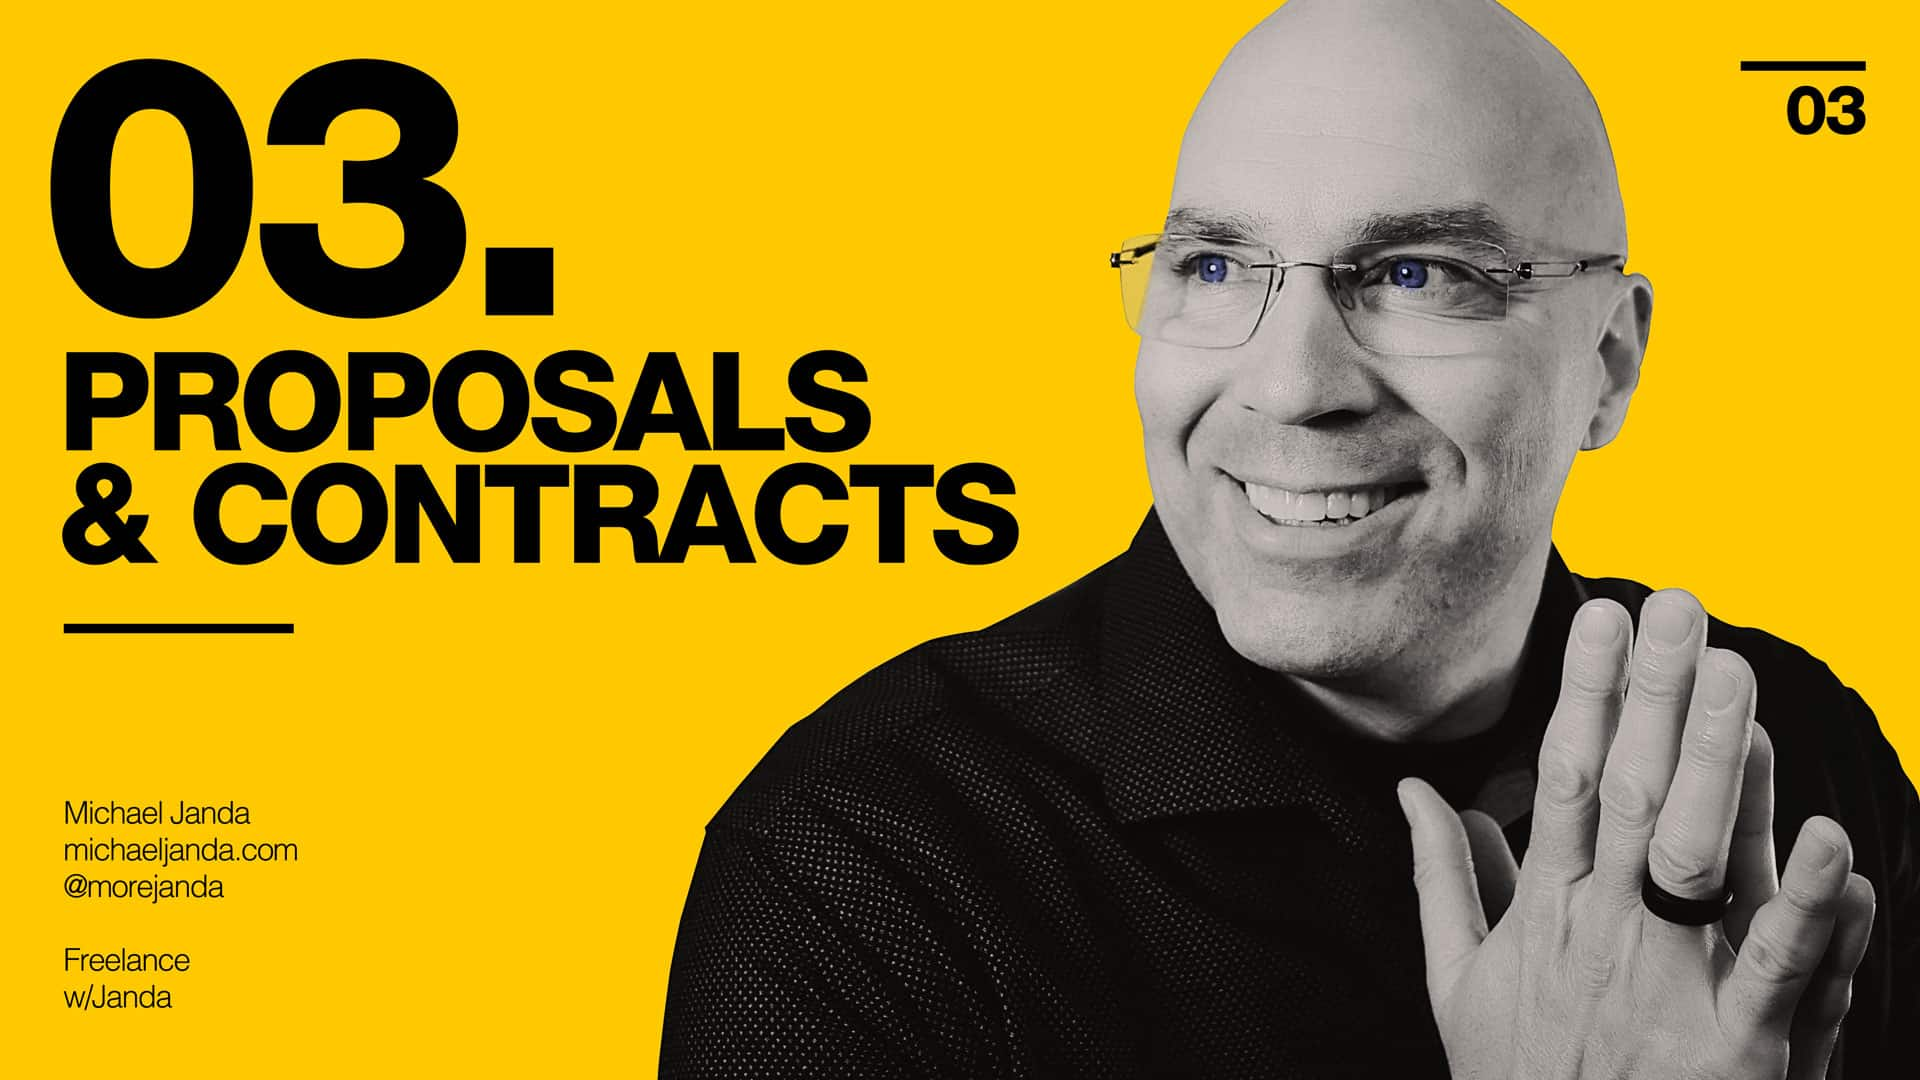 Freelance with Janda - Proposals and Contracts